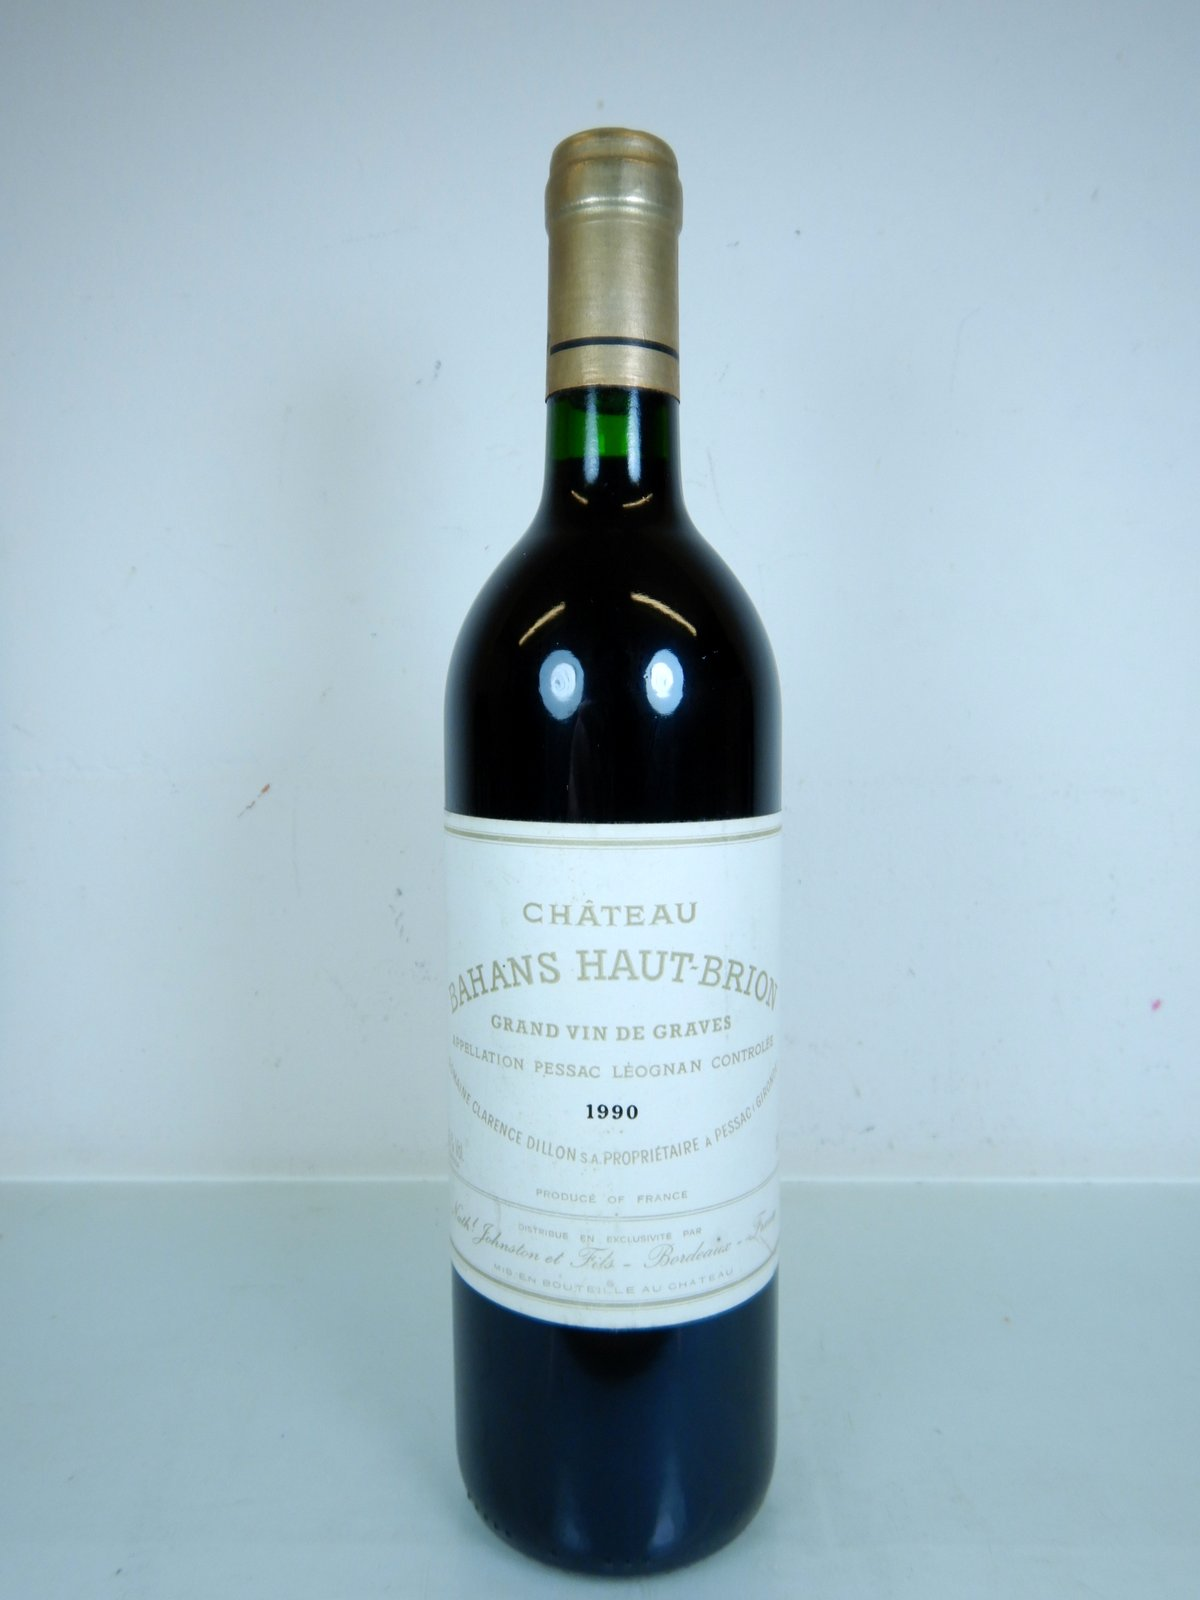 Bahans Haut Brion